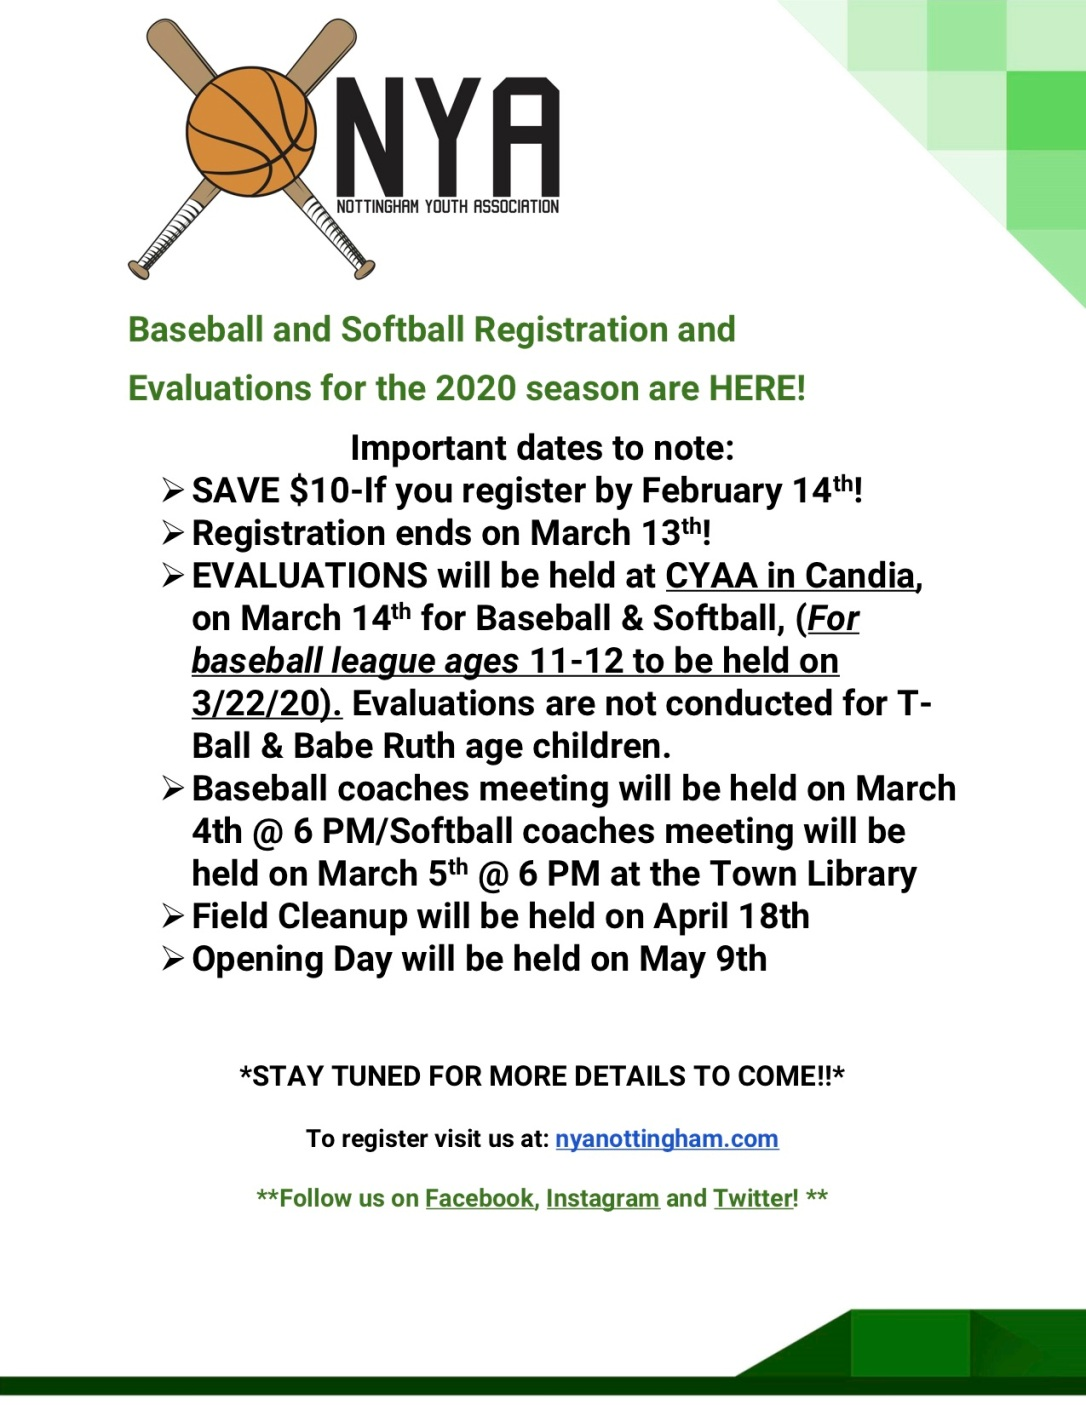 nya-baseball-softball-flier-final-2020-copy-3